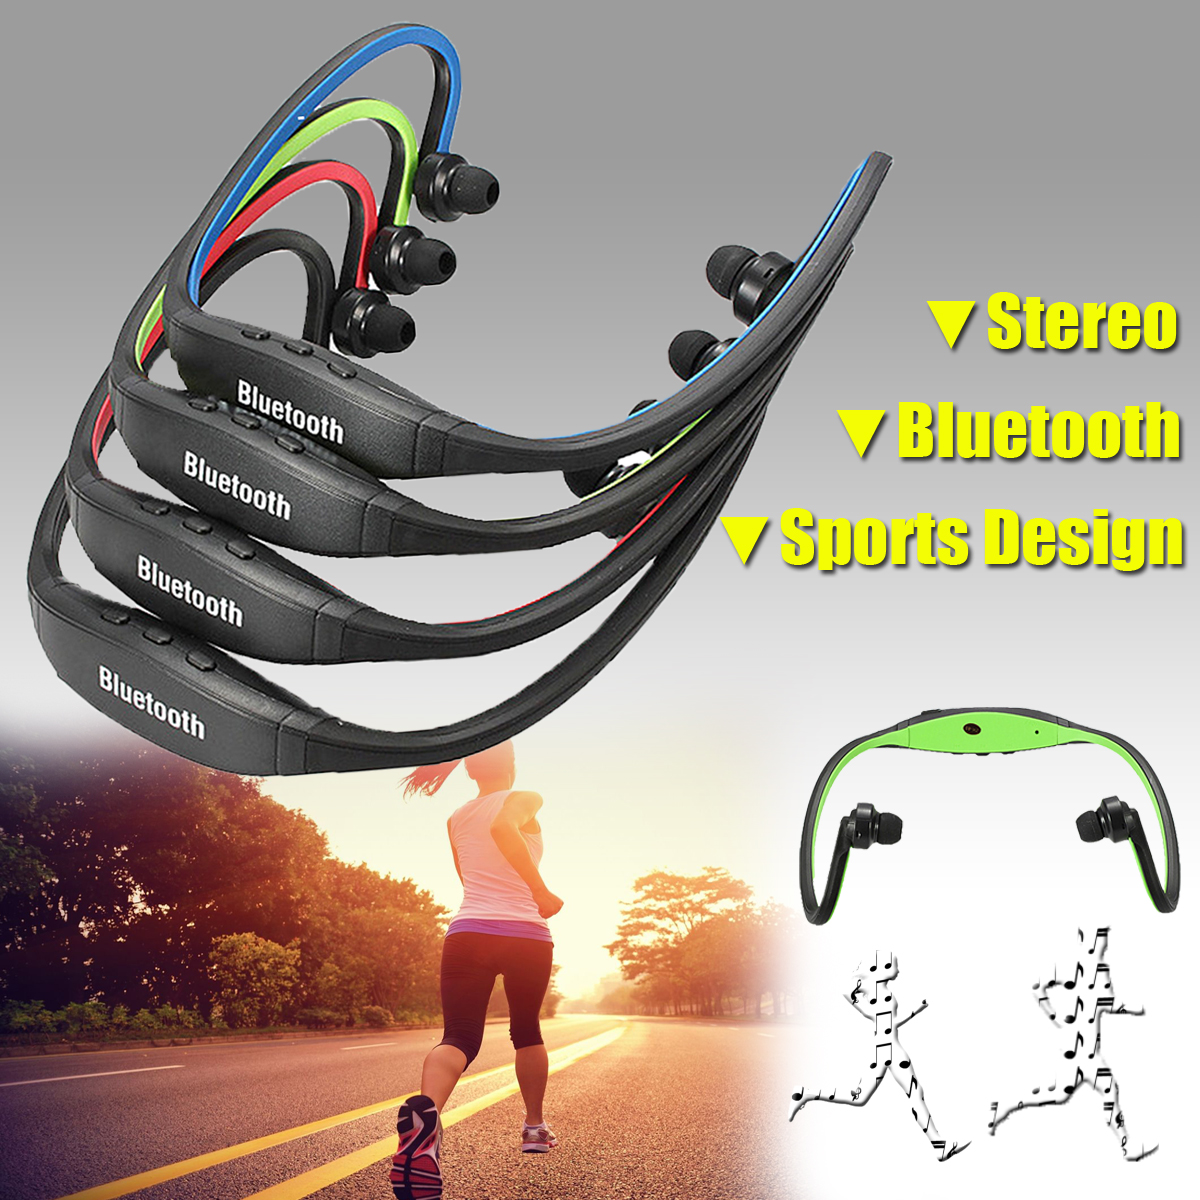 Sports Universal Bluetooth Wireless Stereo Headset Sport Earphone Earbuds Handfree Headphone Mini Portable (with USB Charger Cable) 5 Colors